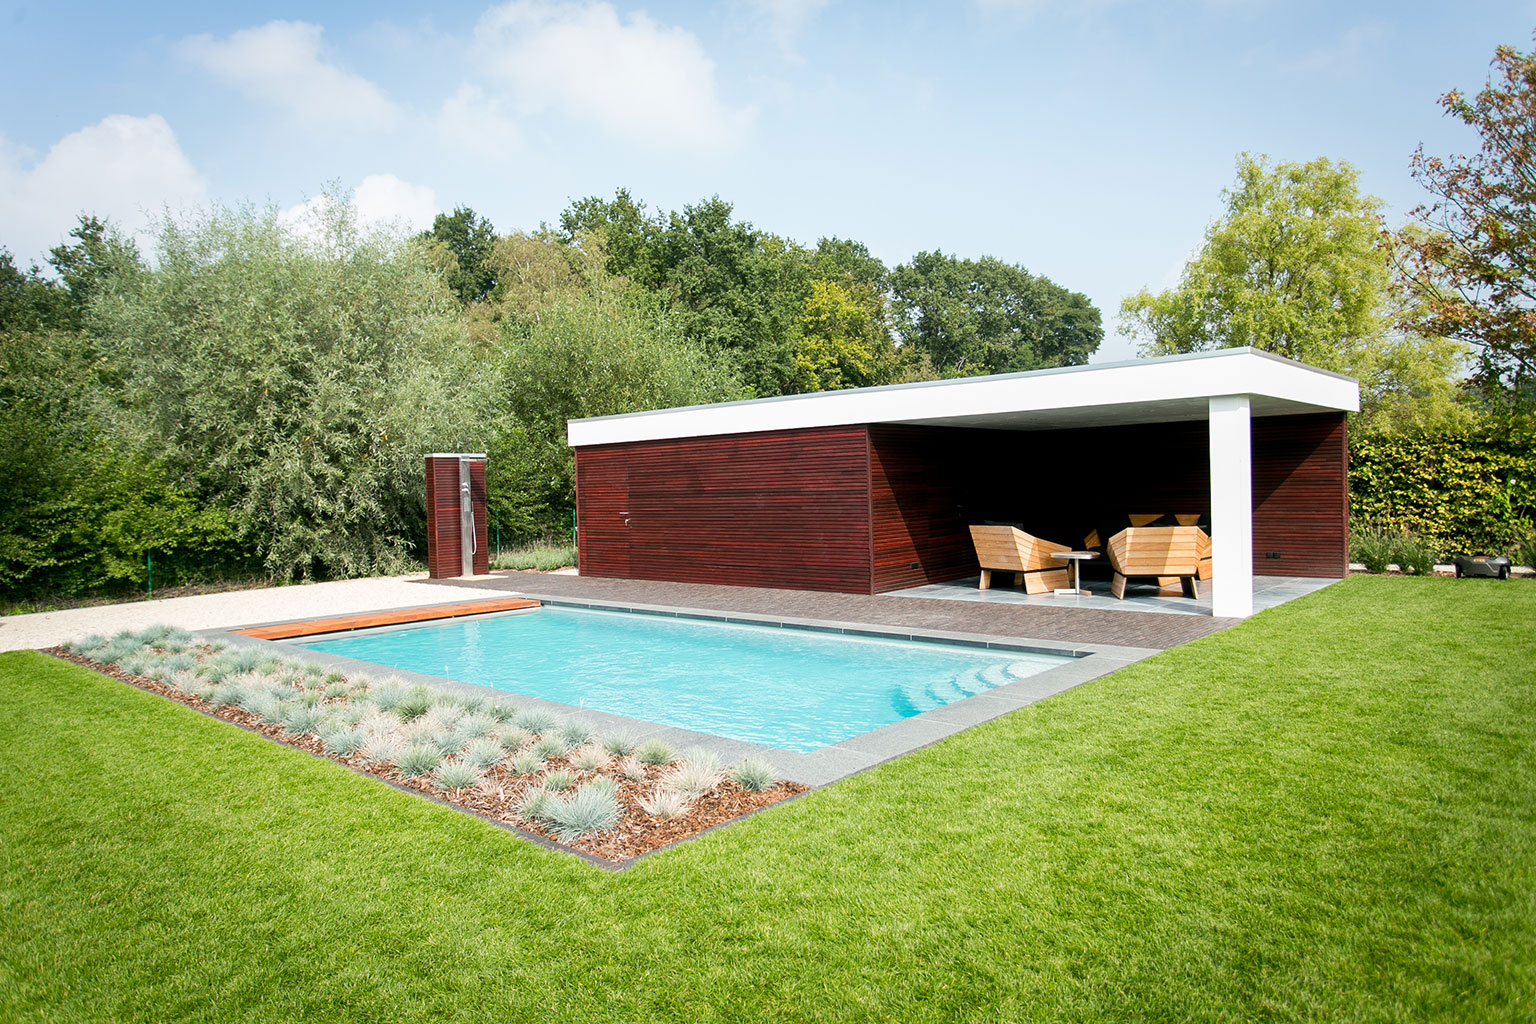 piscine 8x4 Carré de LPW Pools avec poolhouse